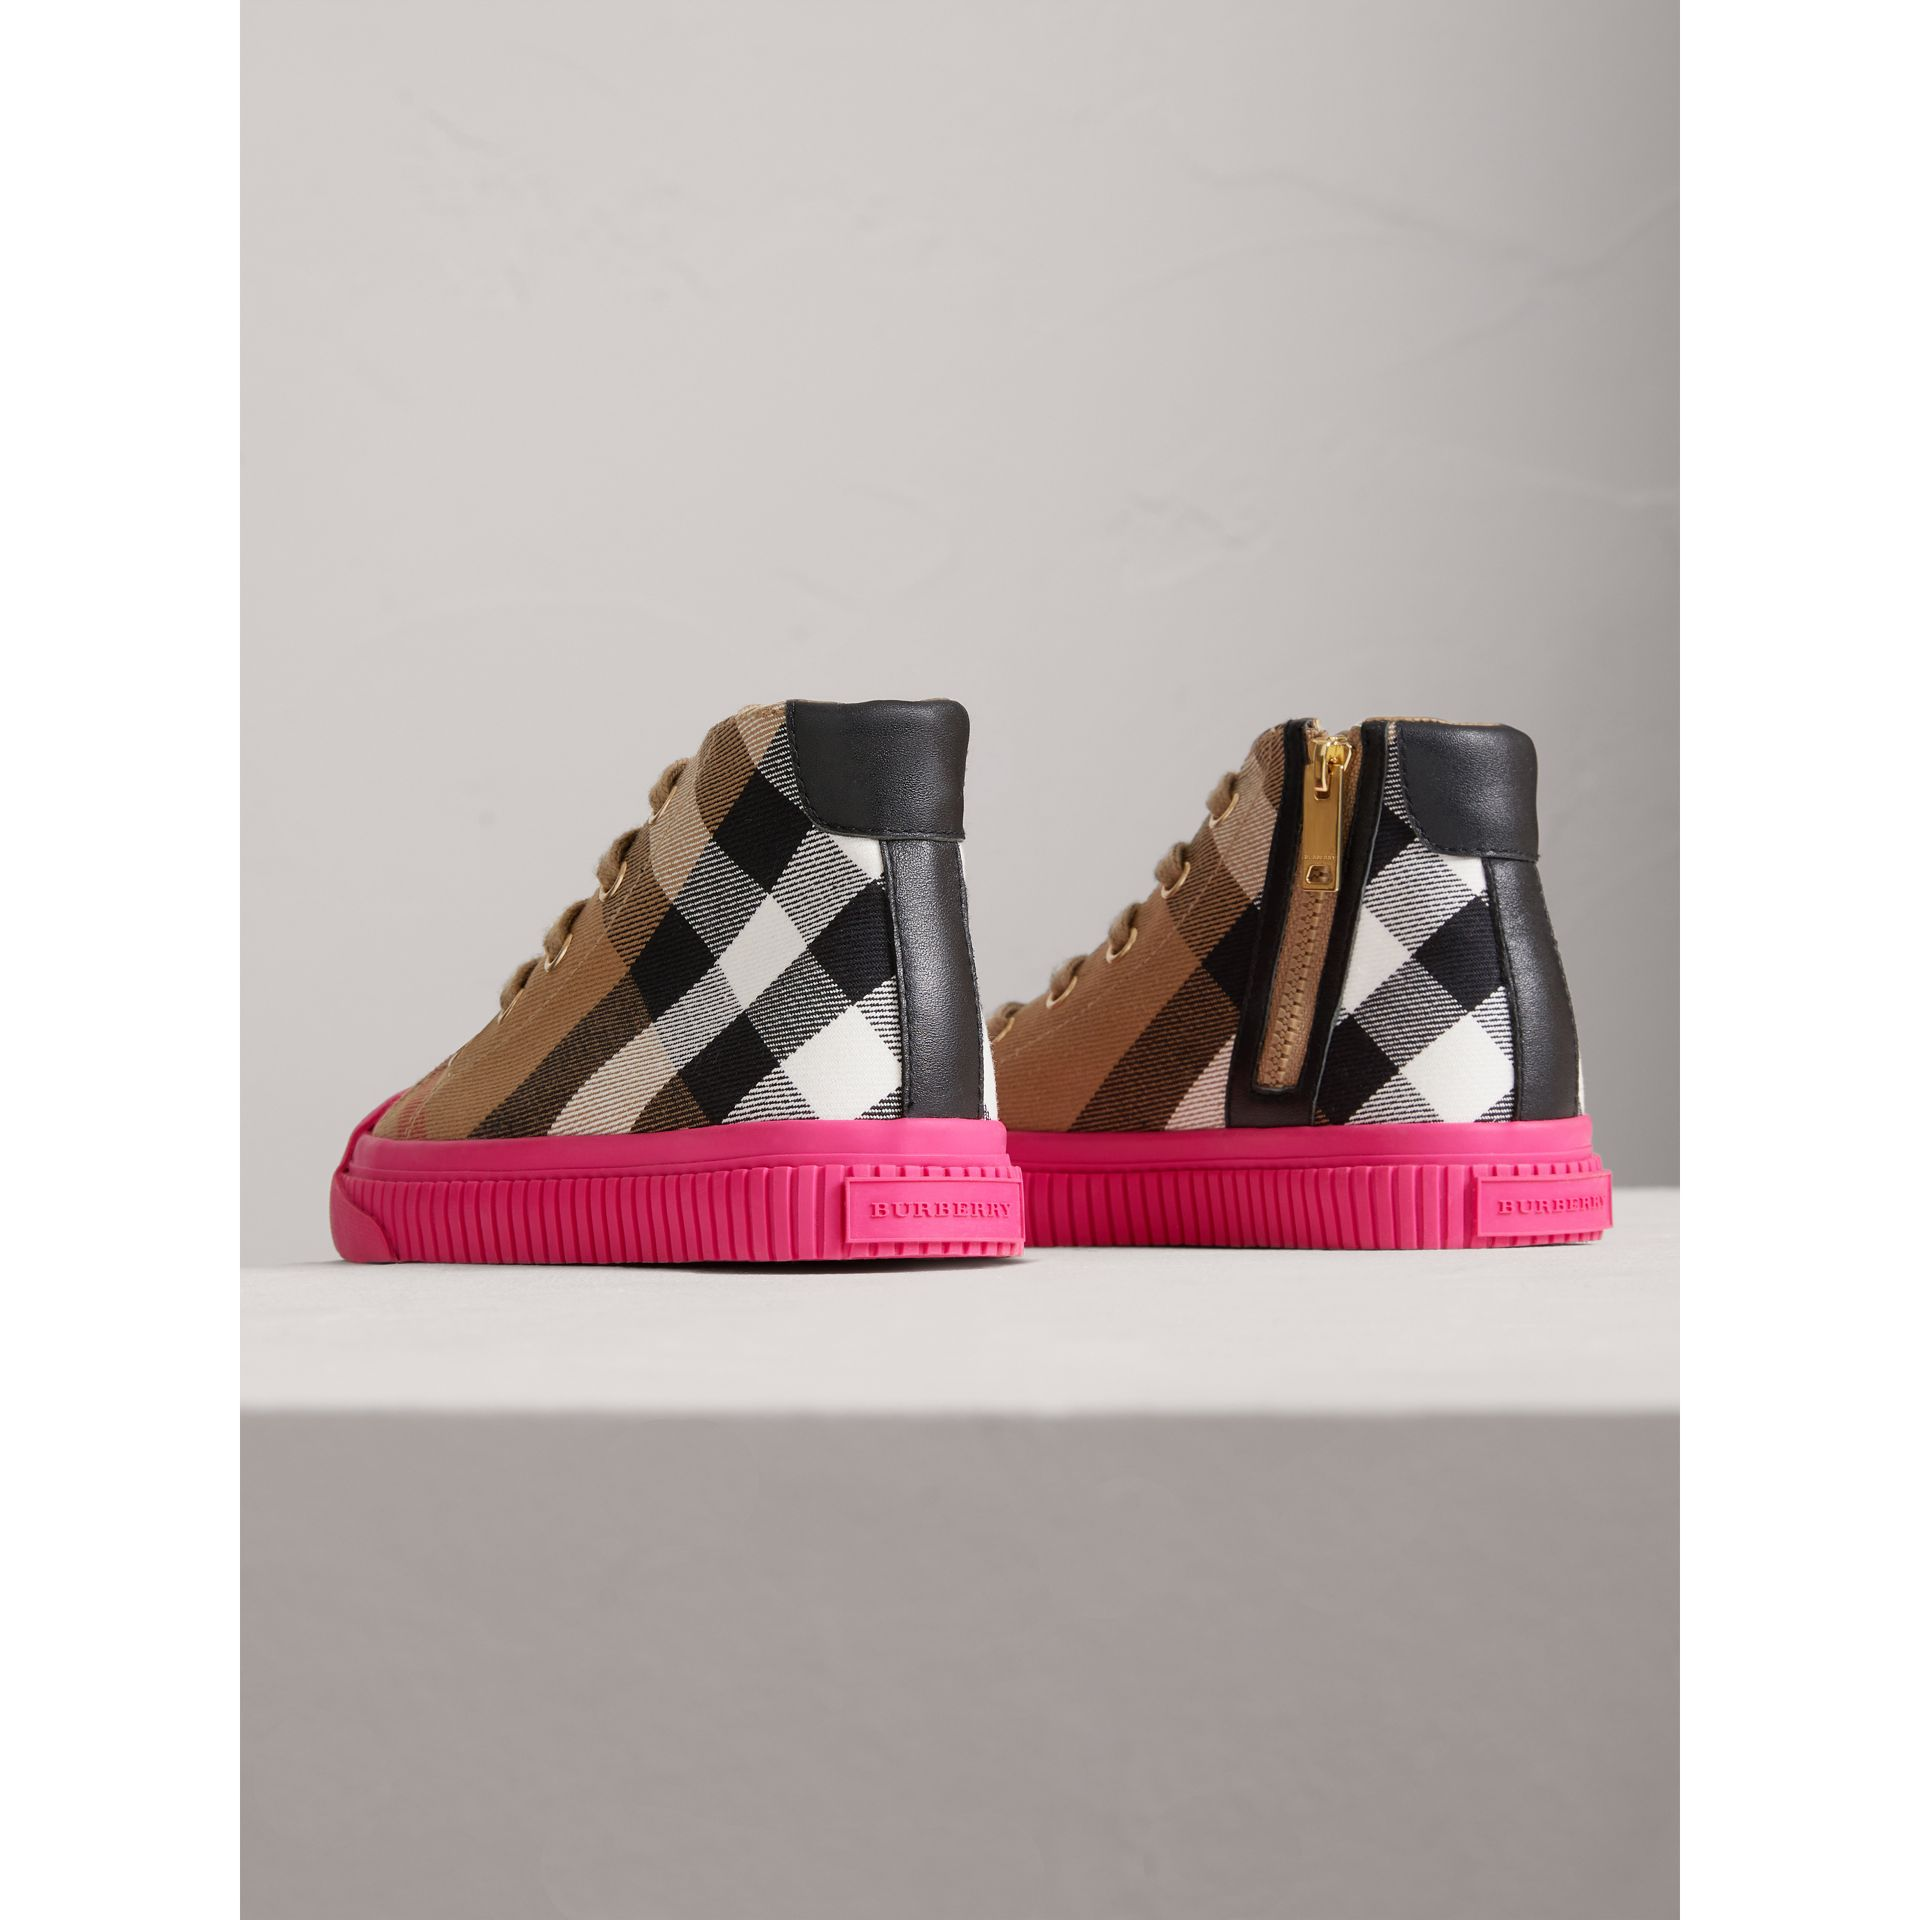 House Check and Leather High-top Sneakers in Classic/neon Pink | Burberry United States - gallery image 2